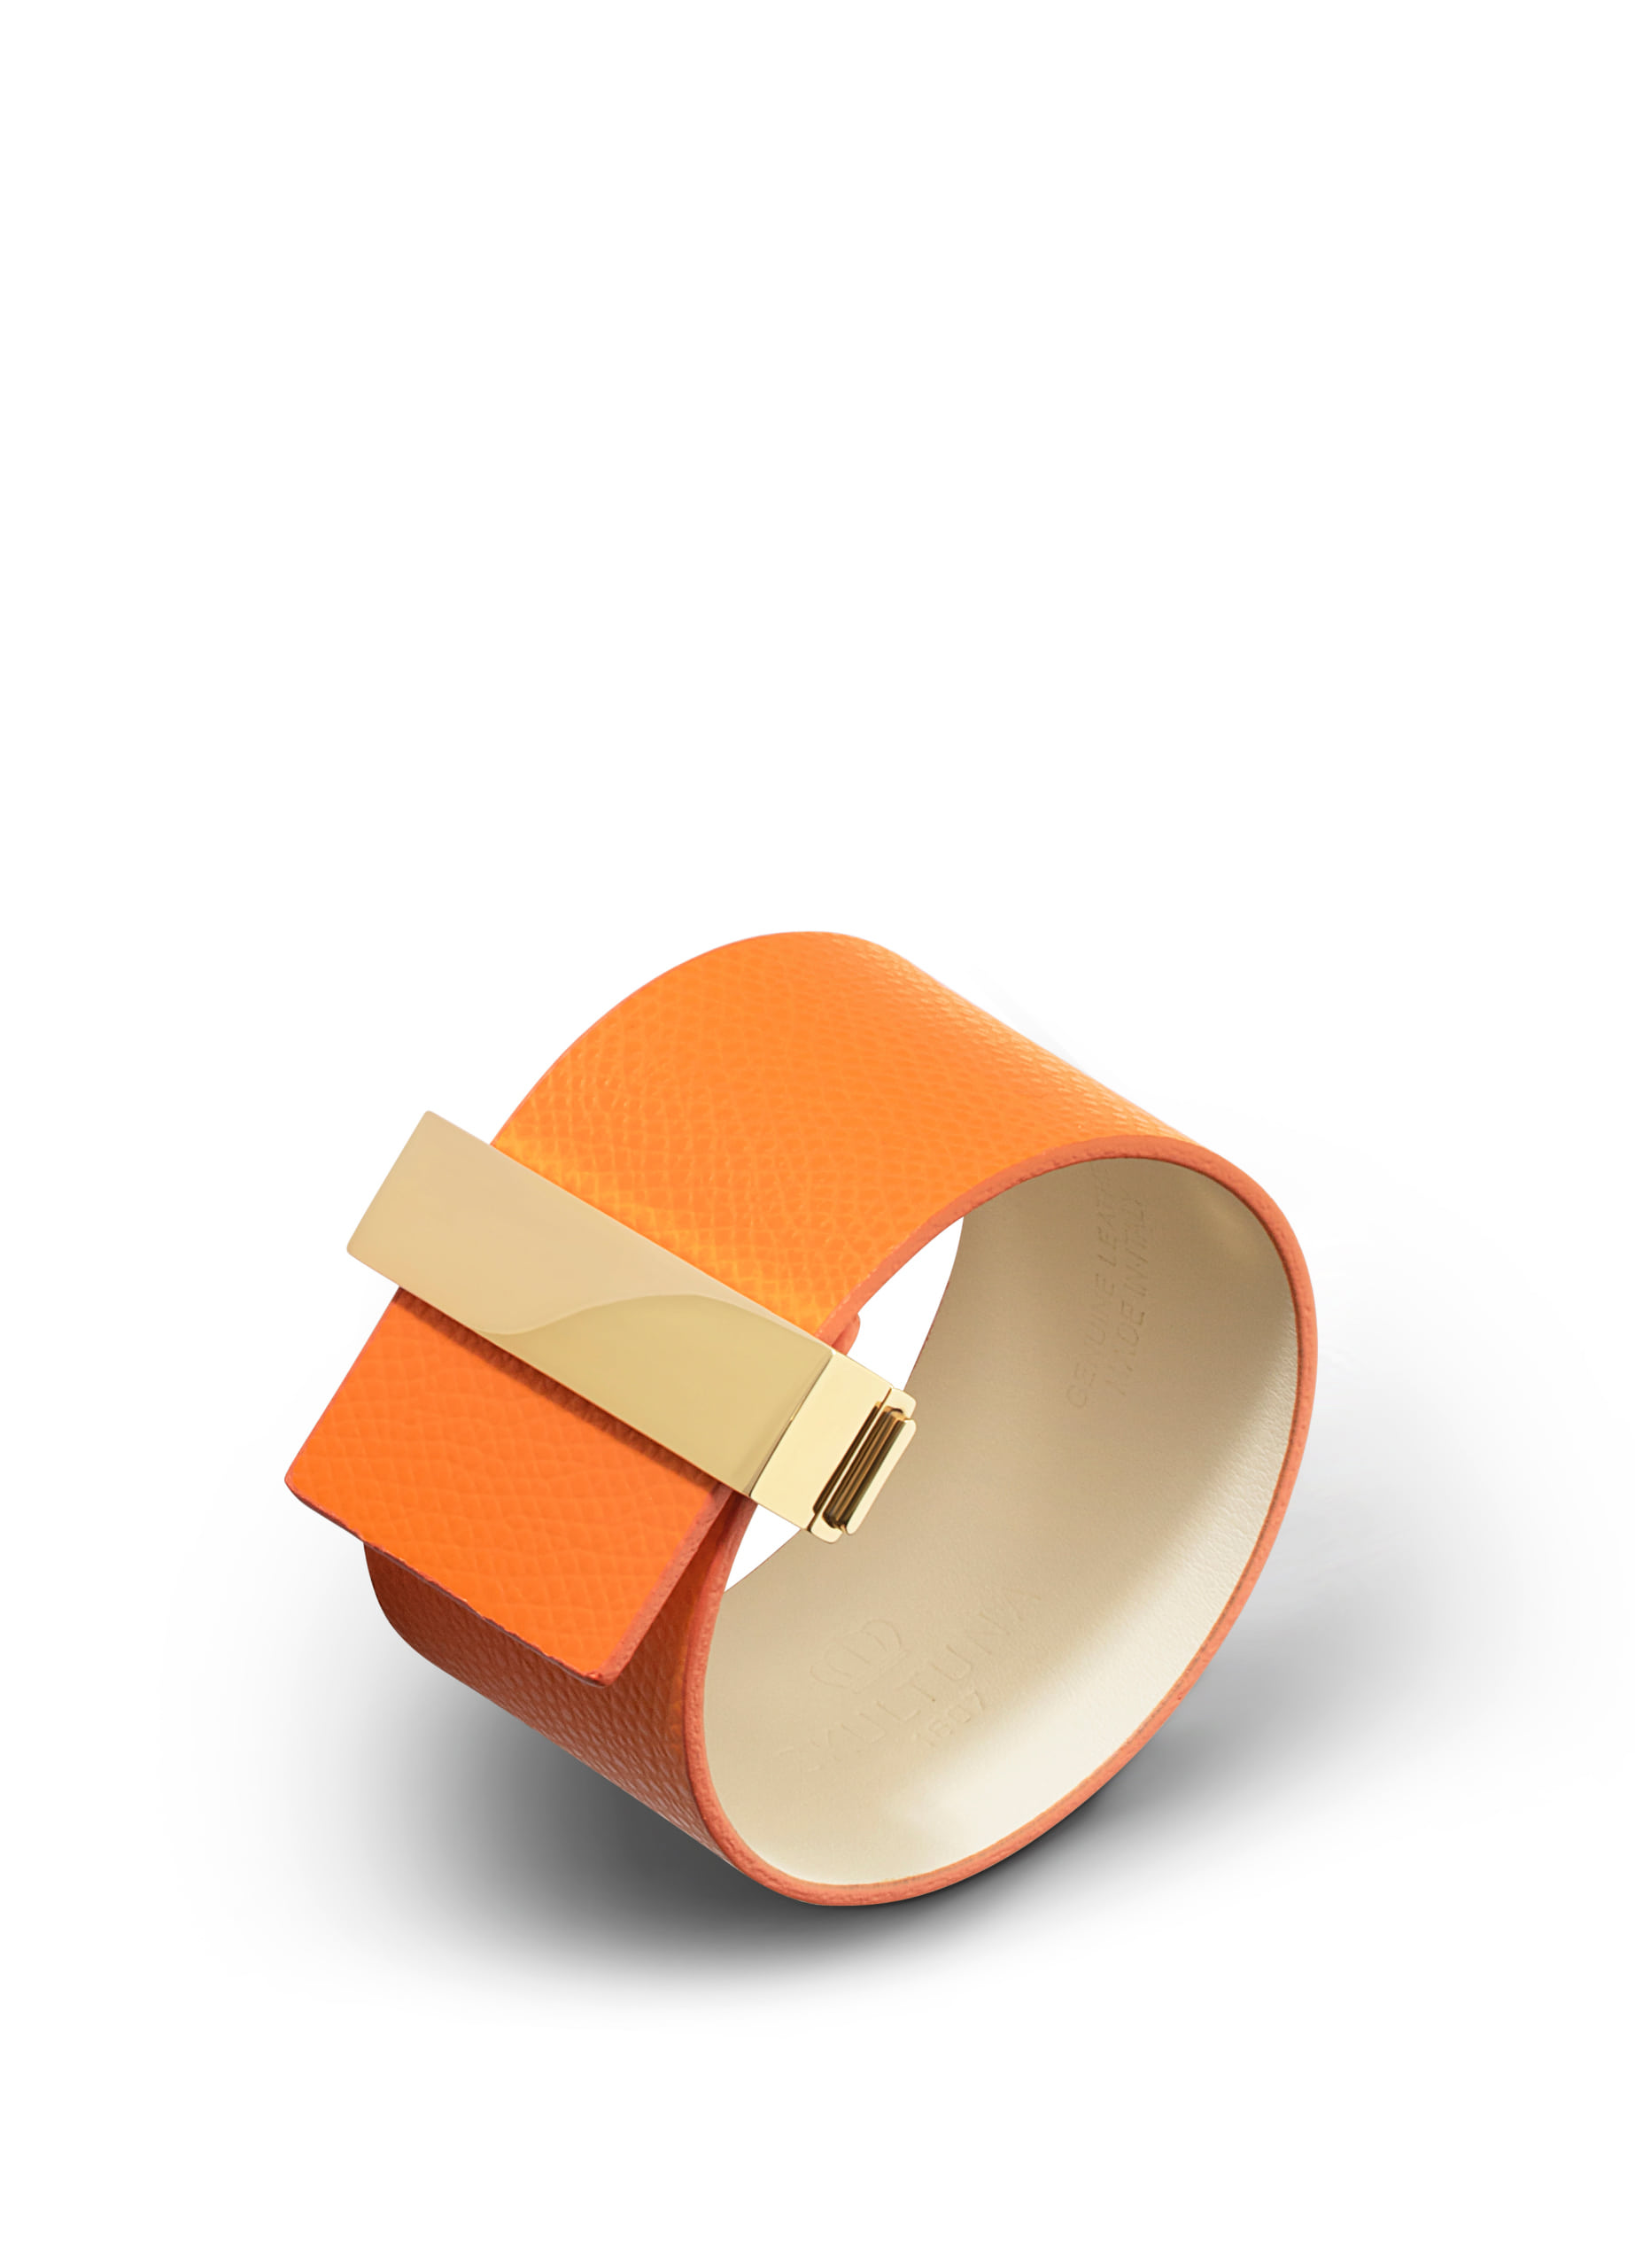 Wide leather bracelet with lock - Orange with gold plated